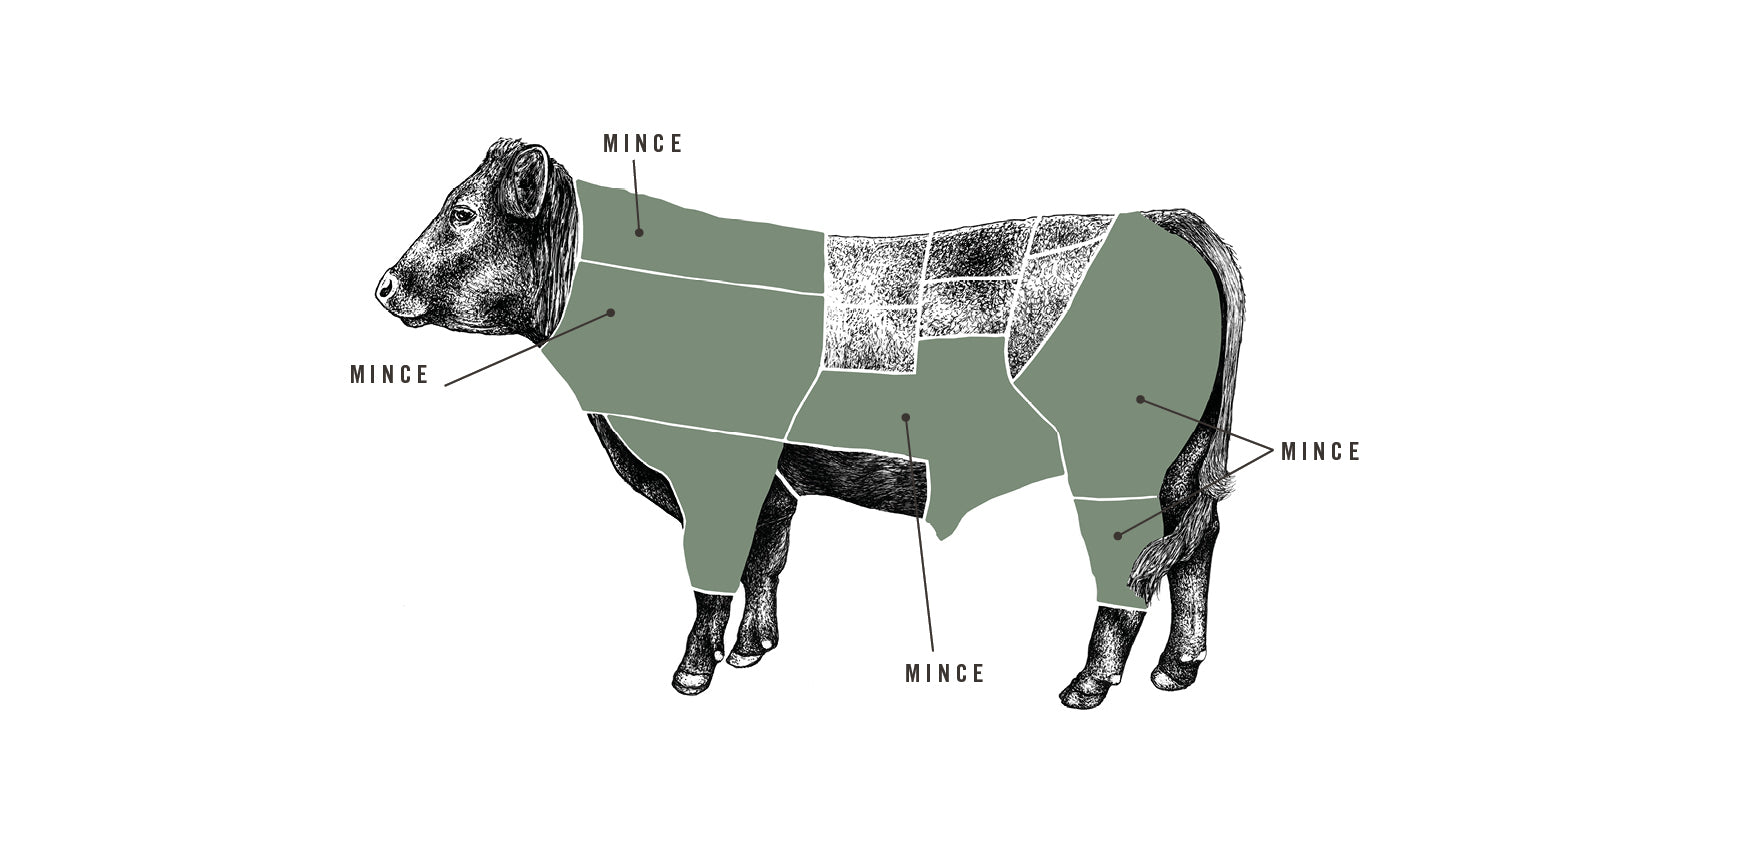 Grass Fed Beef Mince meat cuts diagram